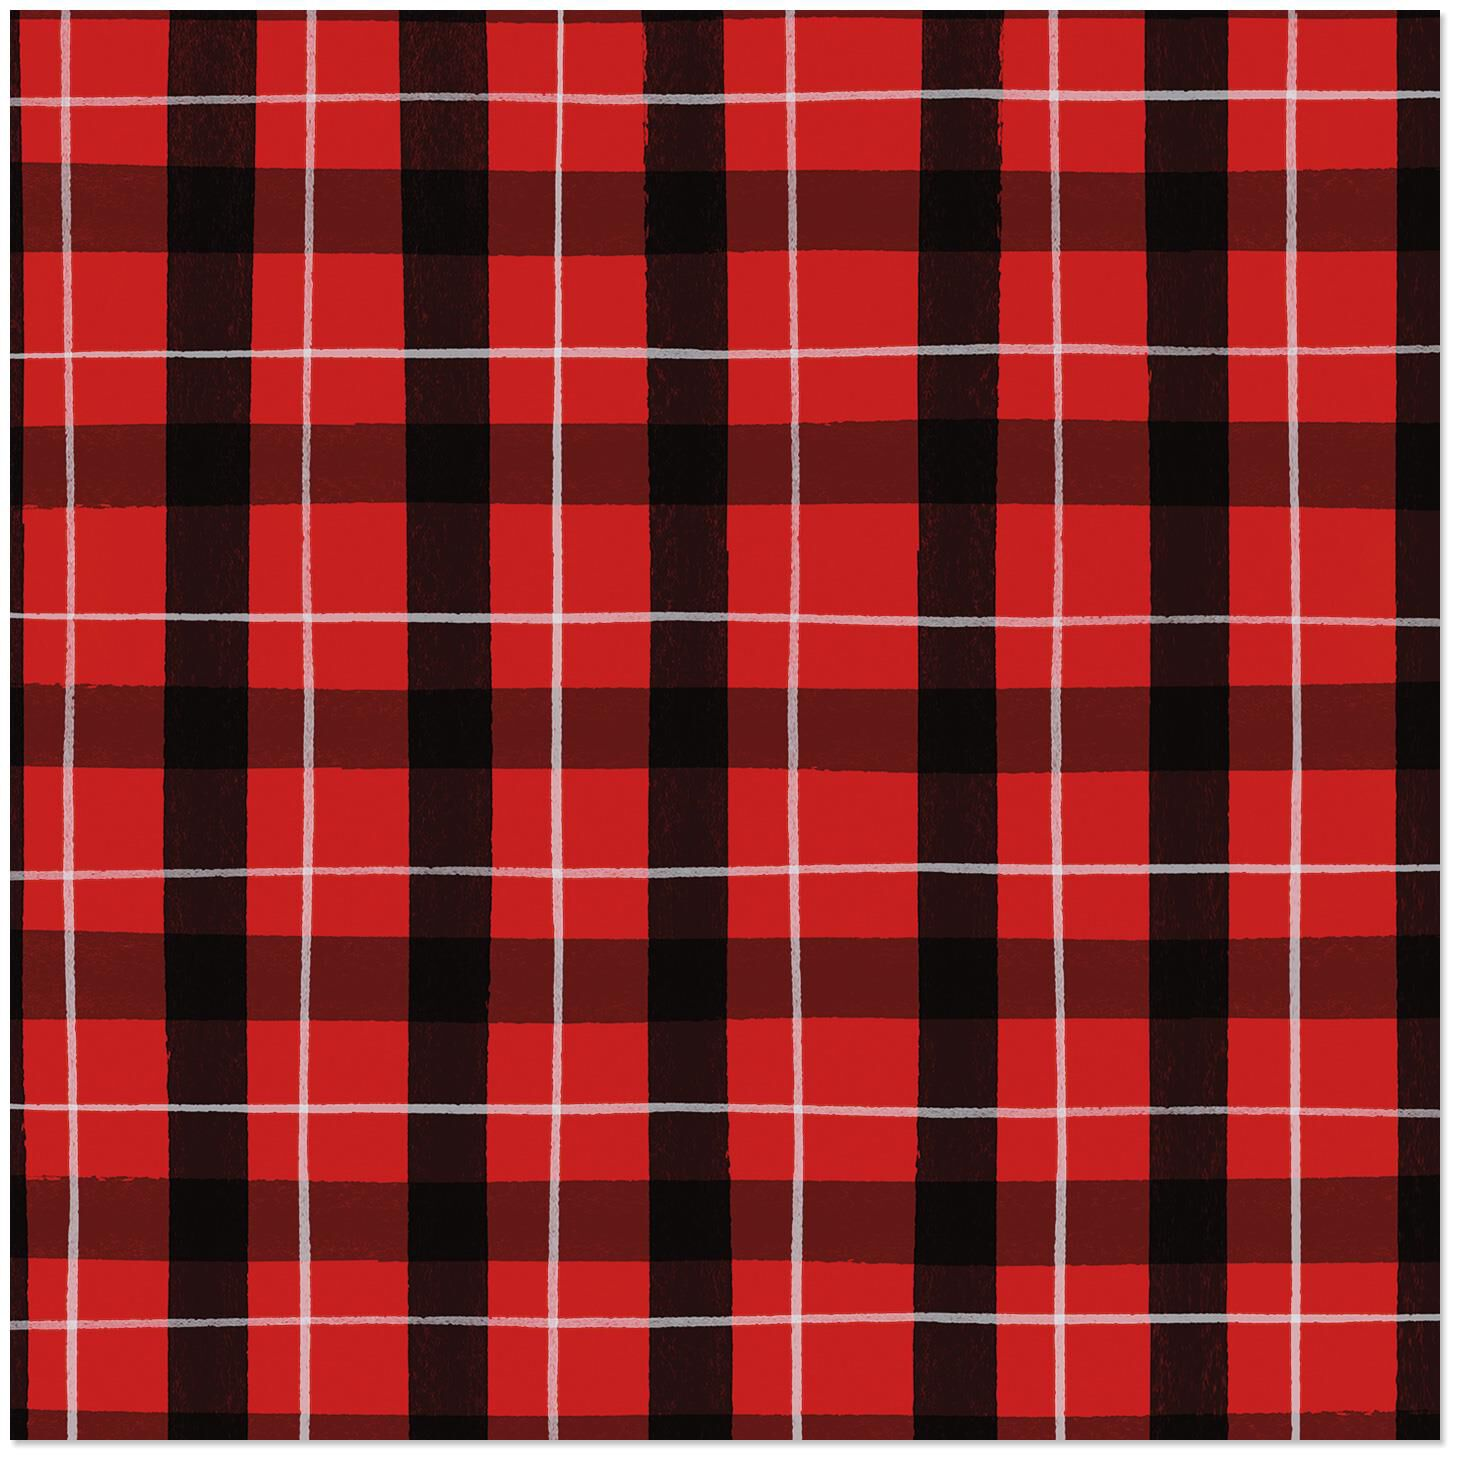 watercolor red plaid christmas wrapping paper roll, 45 sq ftwatercolor red plaid christmas wrapping paper roll, 45 sq ft wrapping paper hallmark